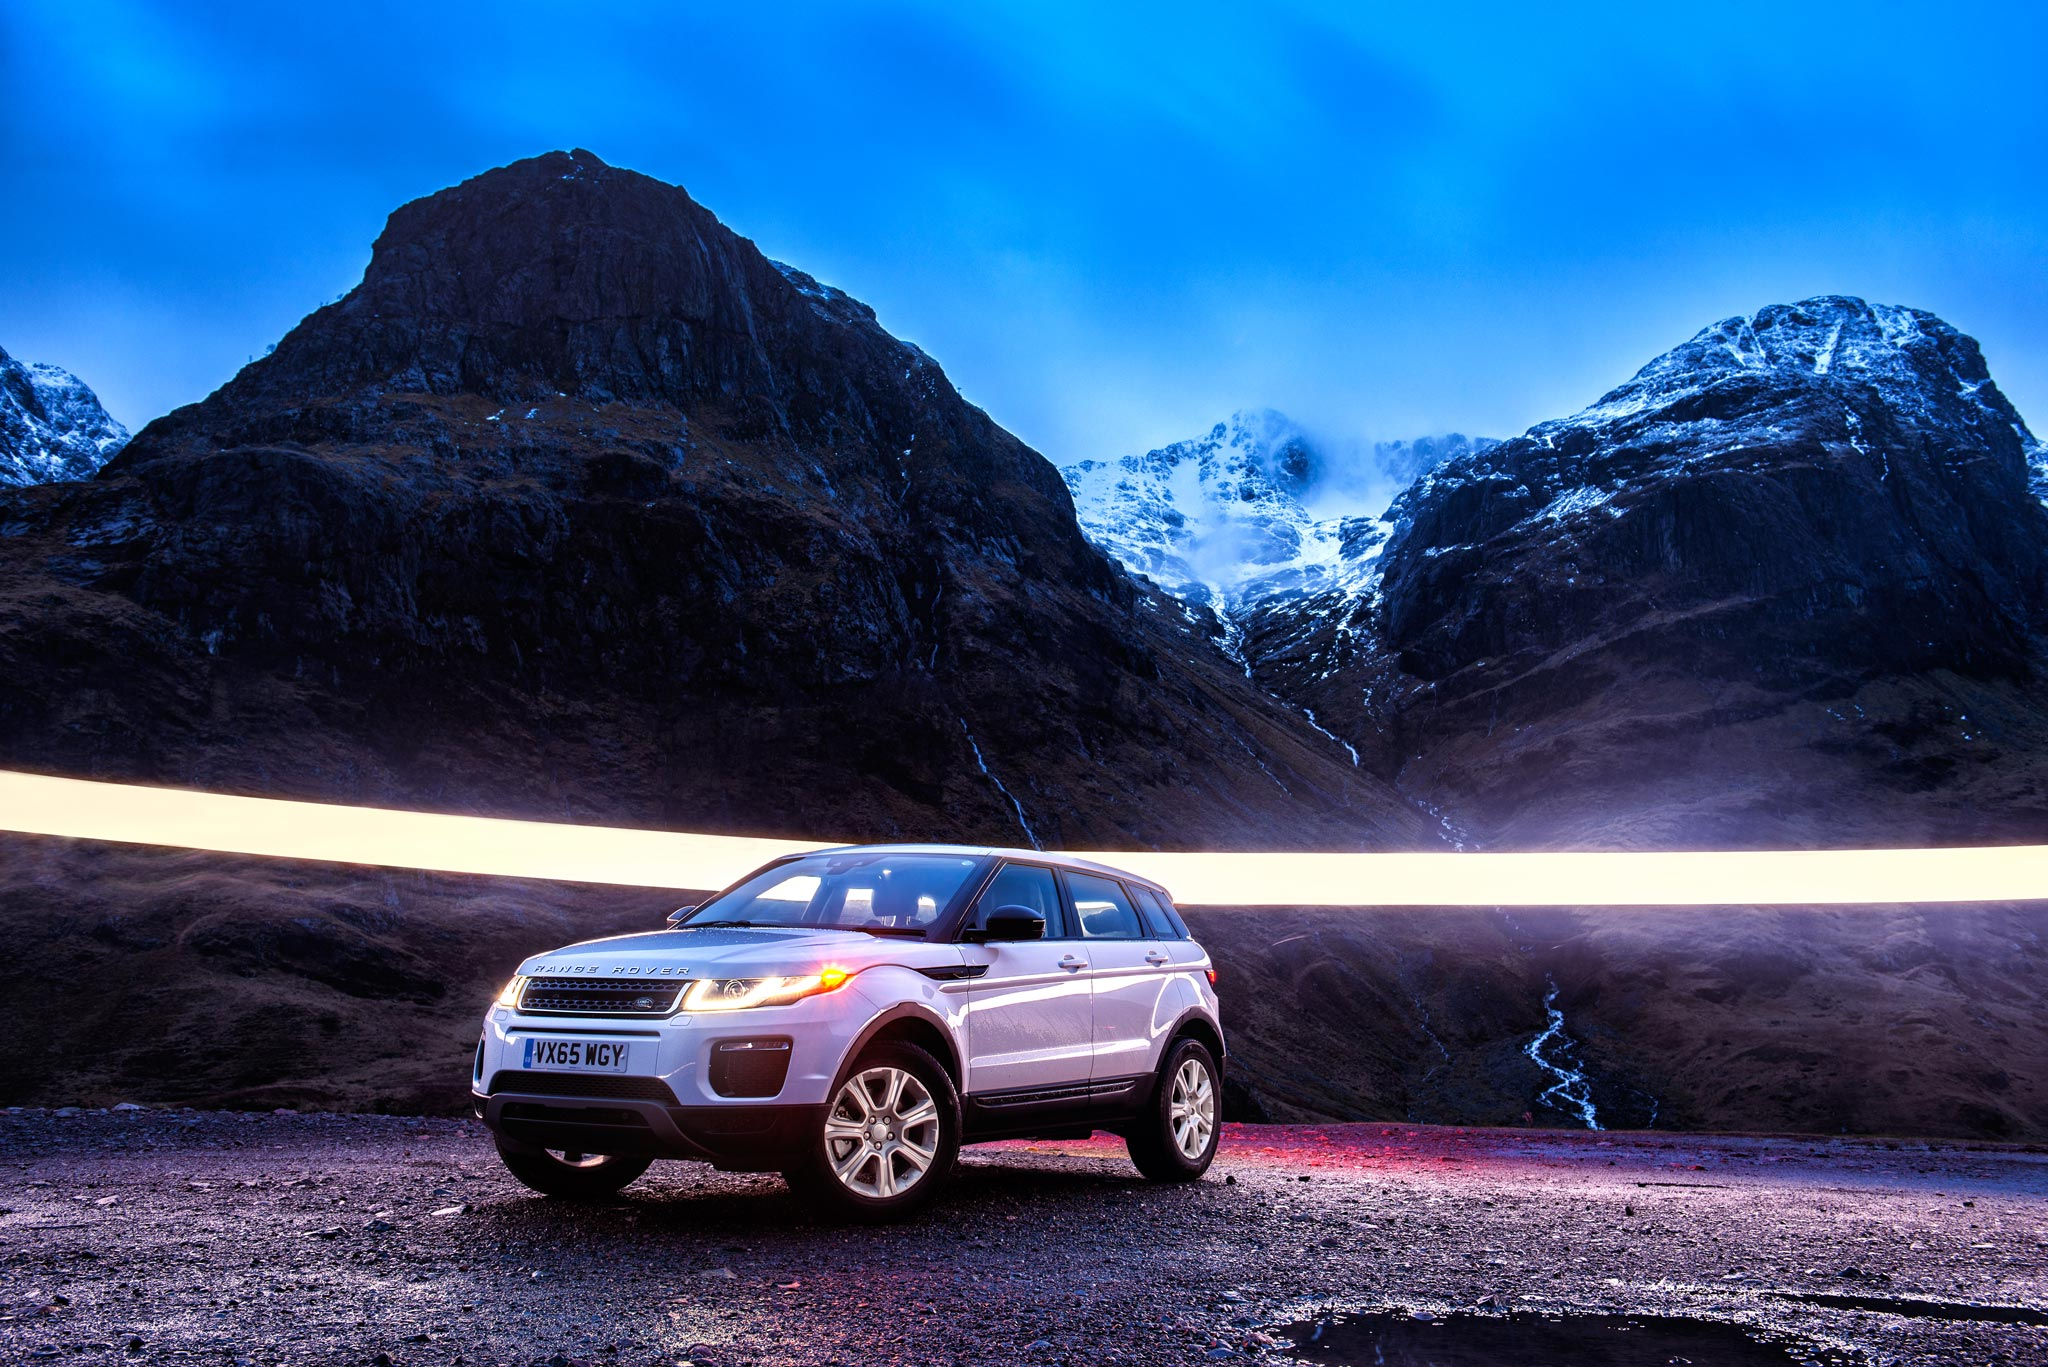 Land Rover  Range Rover Evoque photography shot by DeanWrightAutomotive